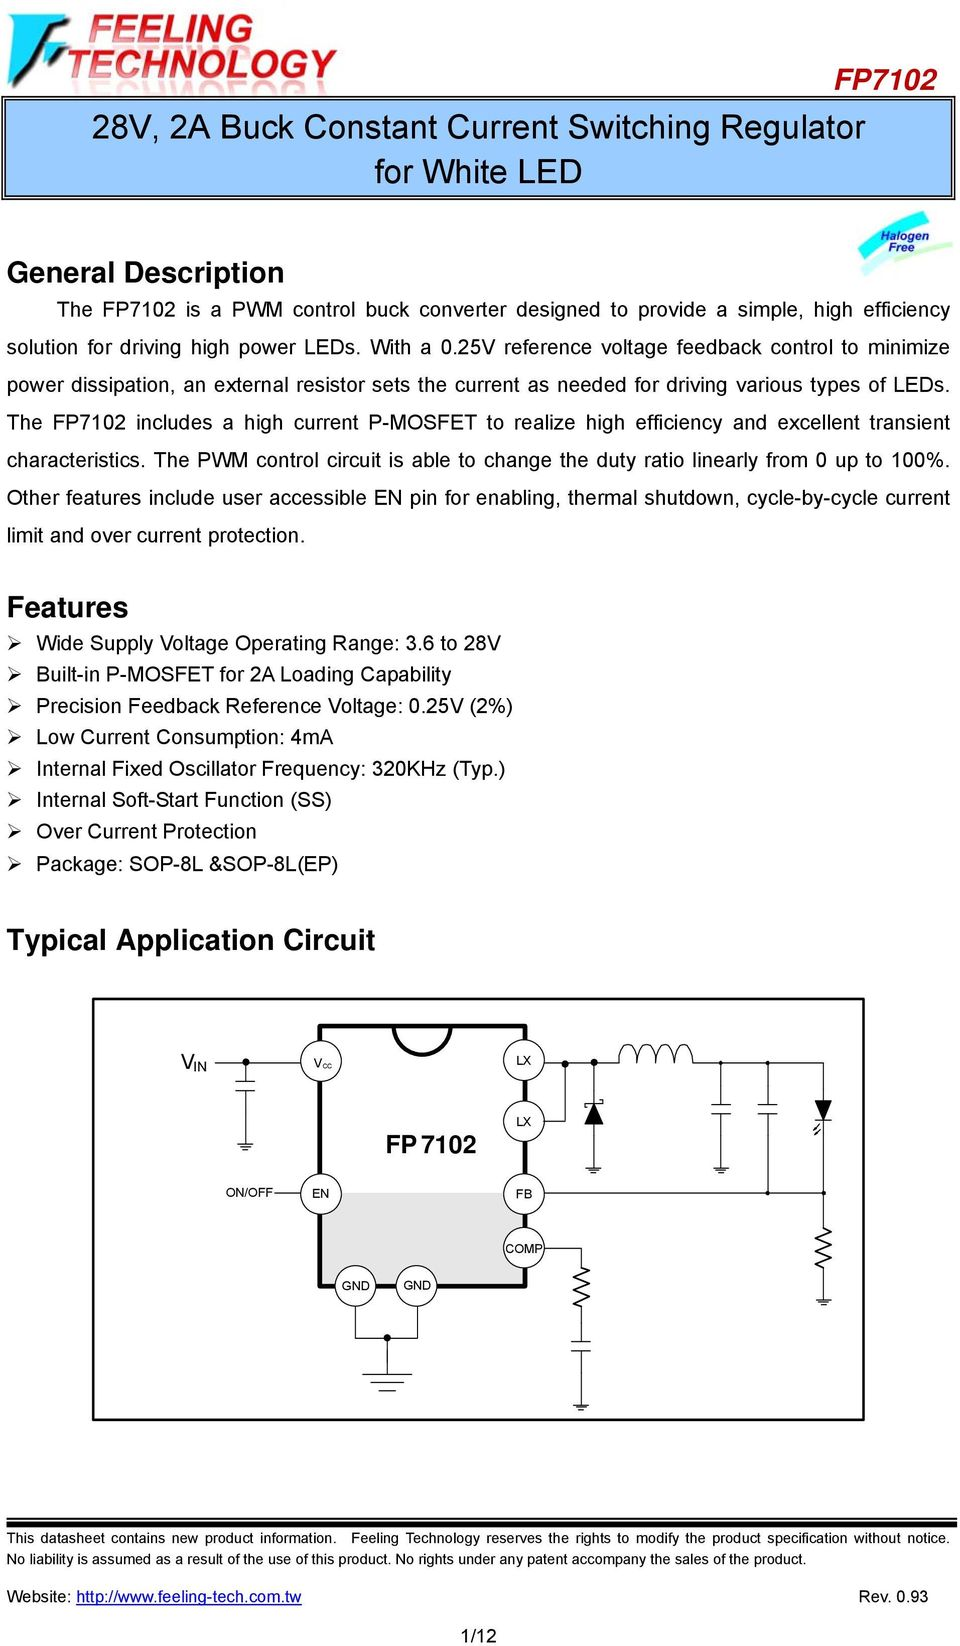 The FP7102 includes a high current P-MOSFET to realize high efficiency and excellent transient characteristics. The PWM control circuit is able to change the duty ratio linearly from 0 up to 100%.